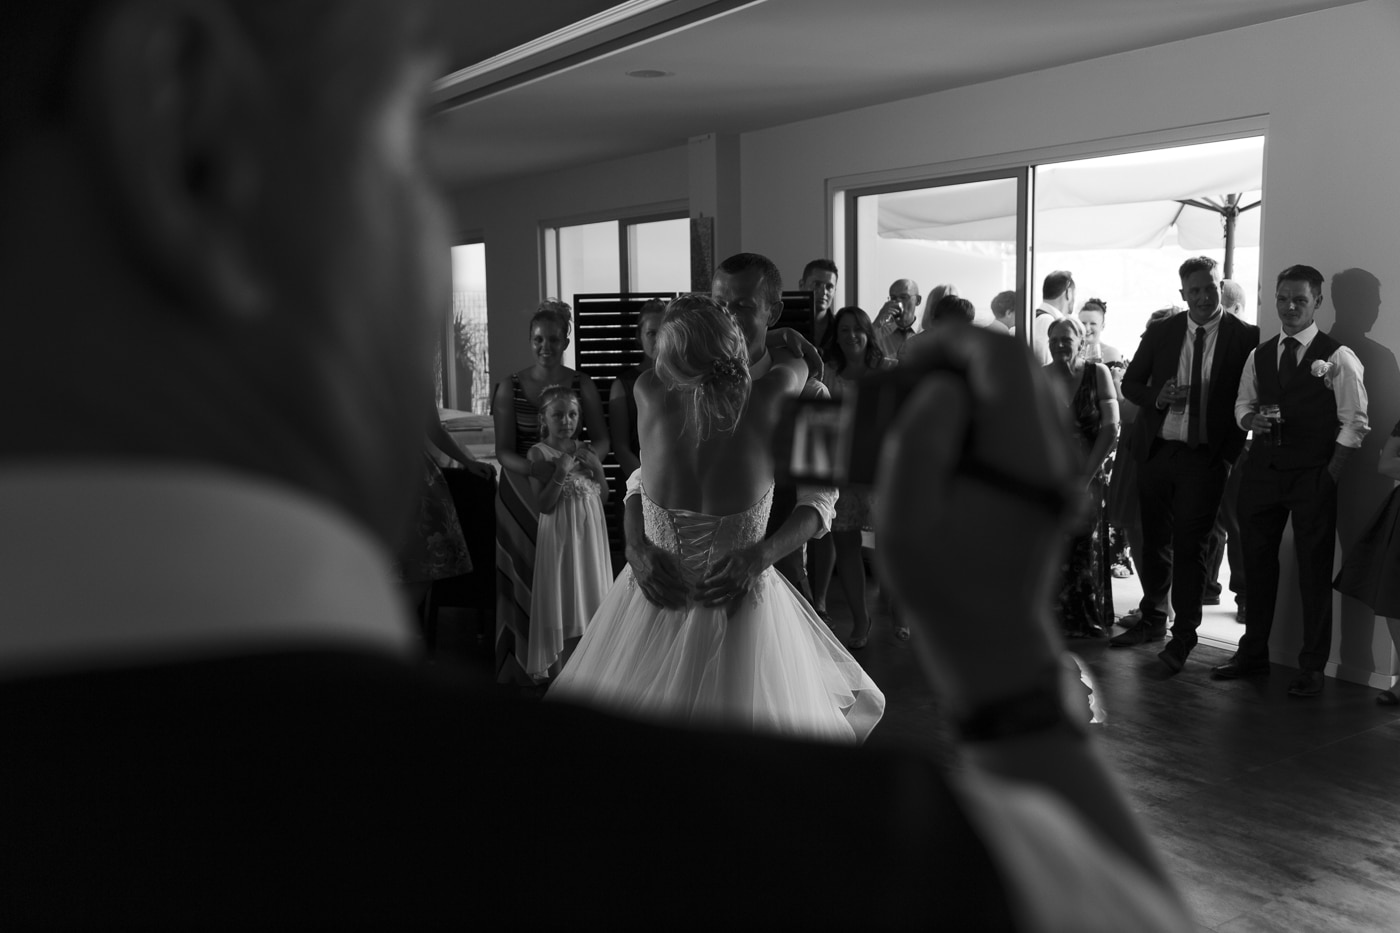 Dancing bride and groom while being videoed on the dancefloor with guests surrounding them by Joshua Wyborn